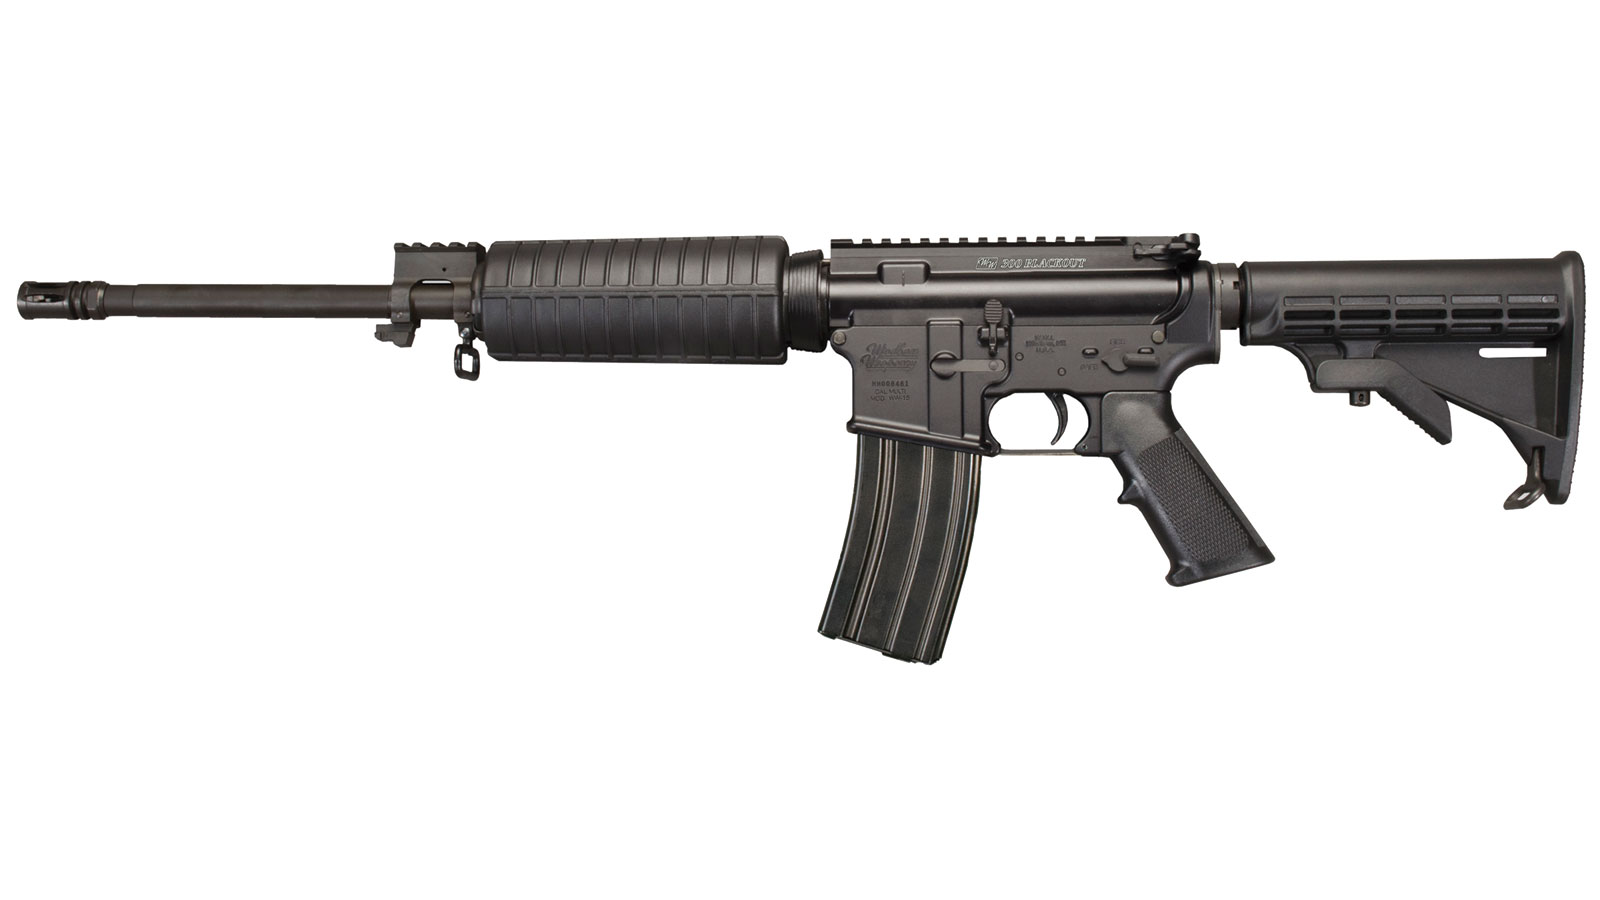 Windham Weaponry R16FTT300 SRC Semi-Automatic 300 AAC Blackout|Whisper (7.62x35mm) 16 30+1 6-Position Black Stk Black Hard Coat Anodized|Black Phosphate in.